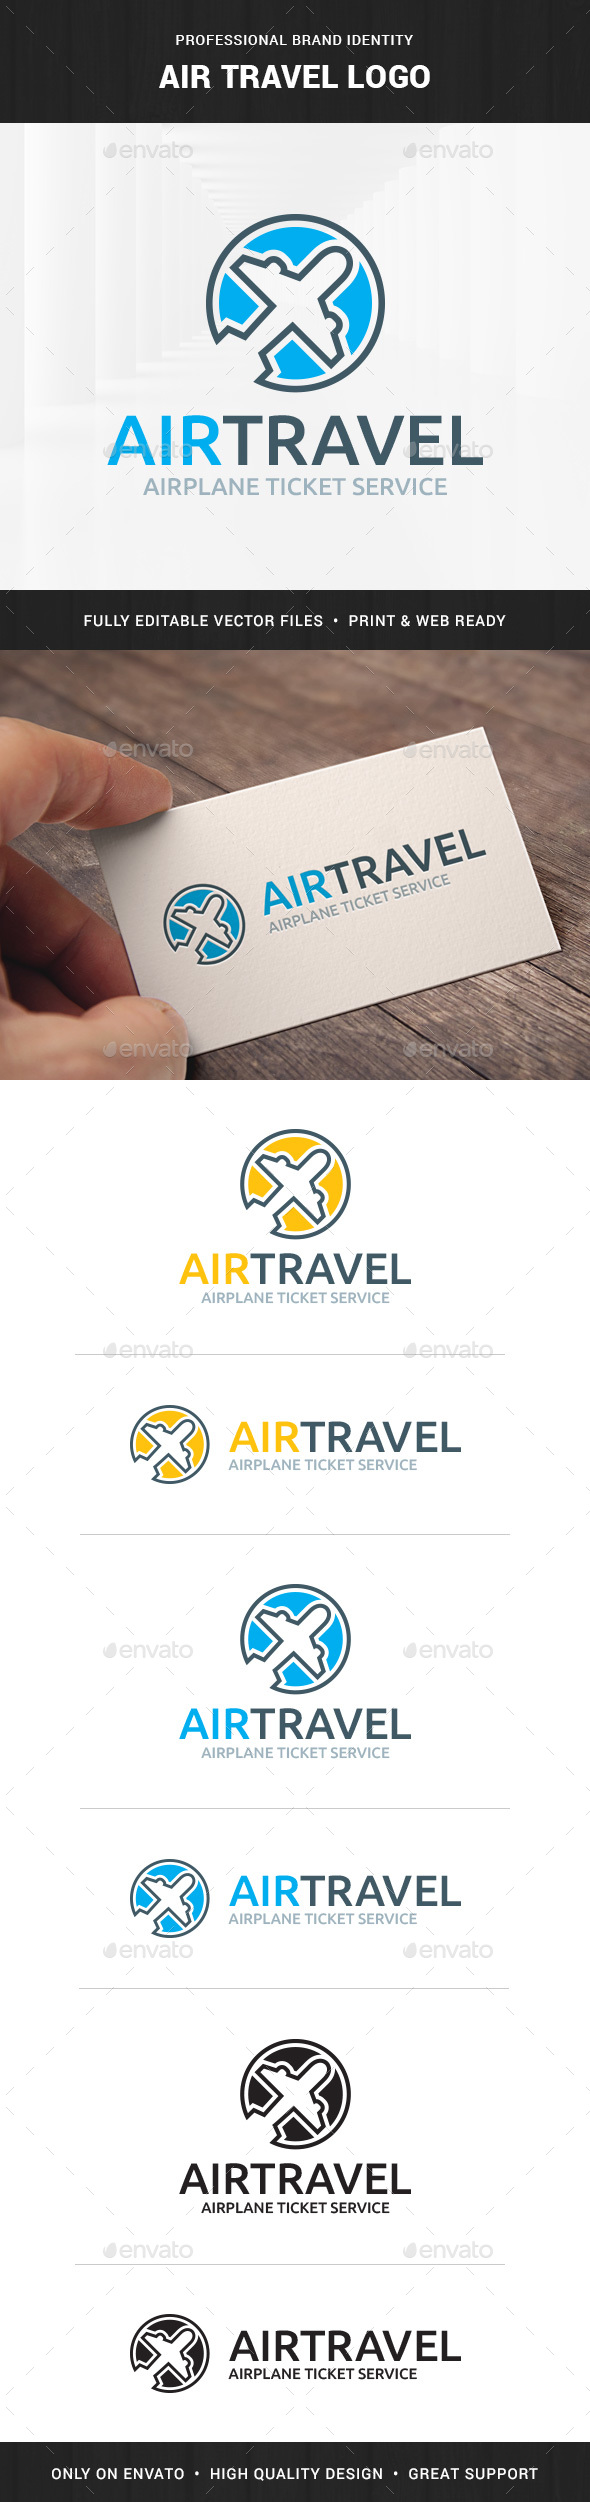 Air Travel logo Template - Logo Templates